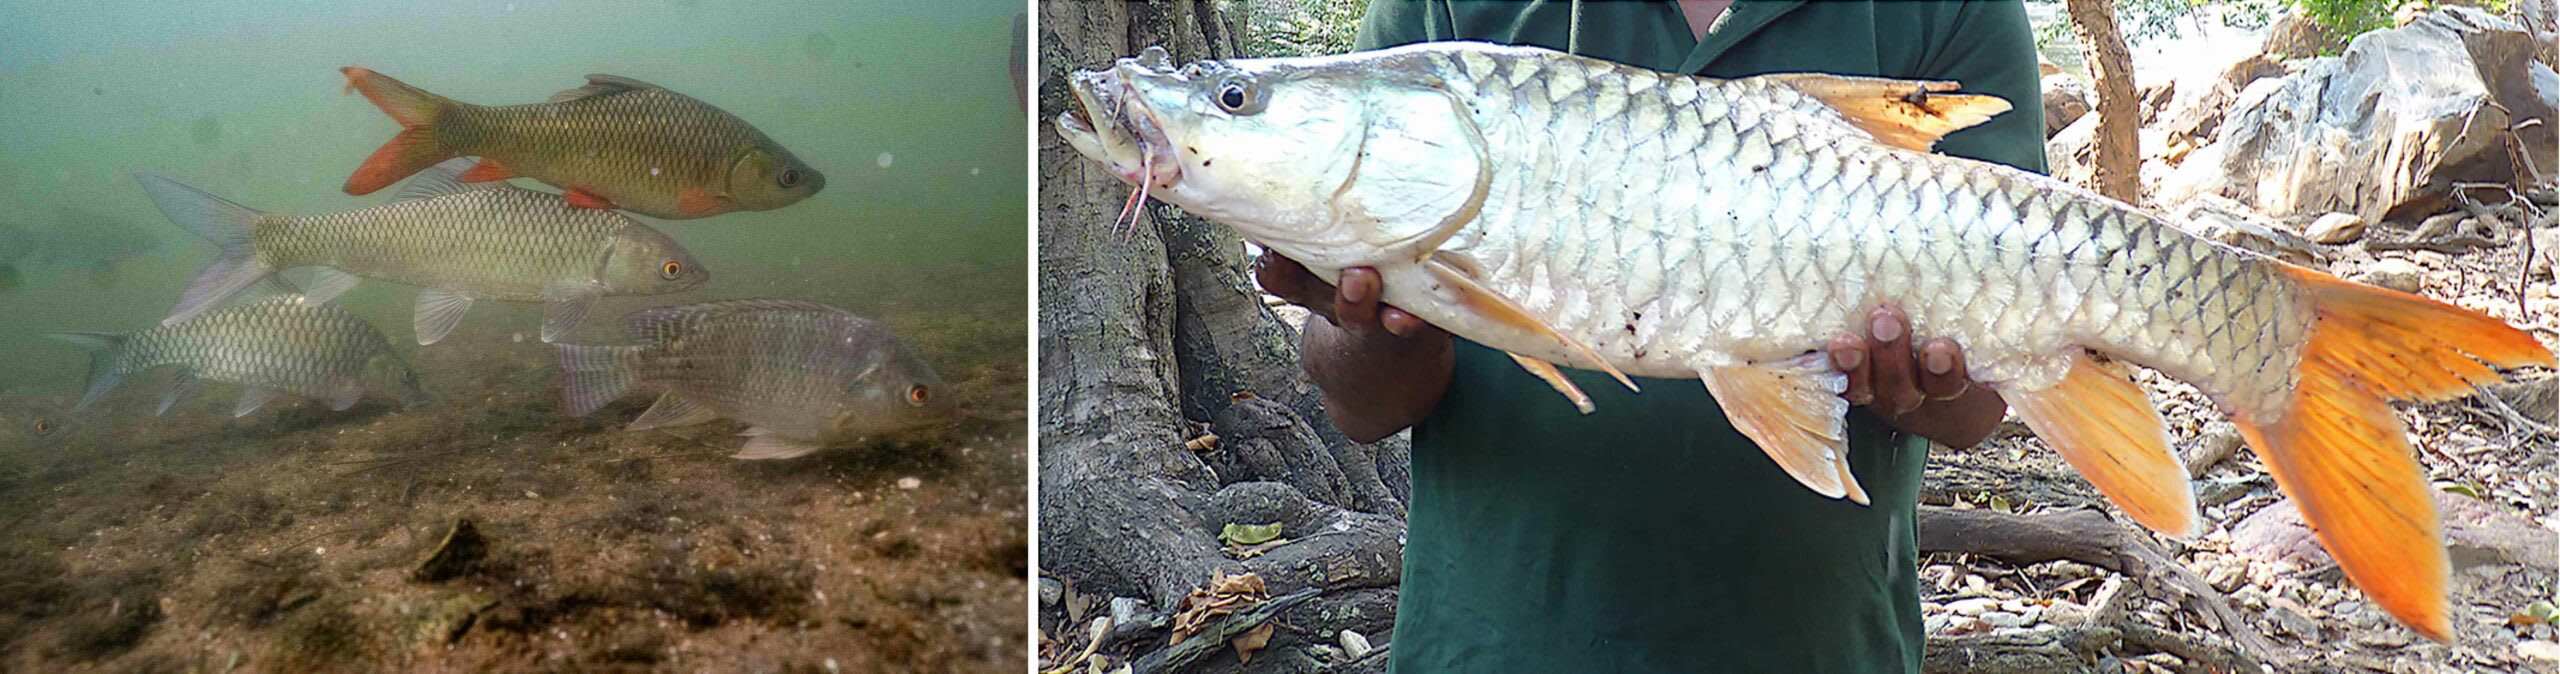 (Left) Introduction of invasive species such as the tilapia is hampering the habitat of the mahseer. (Right) Adult orange-finned mahseer or humpback mahseer caught from the Moyar River. Photos: Joshua Barton (left), Pinder et al, CC BY 4.0 (right)